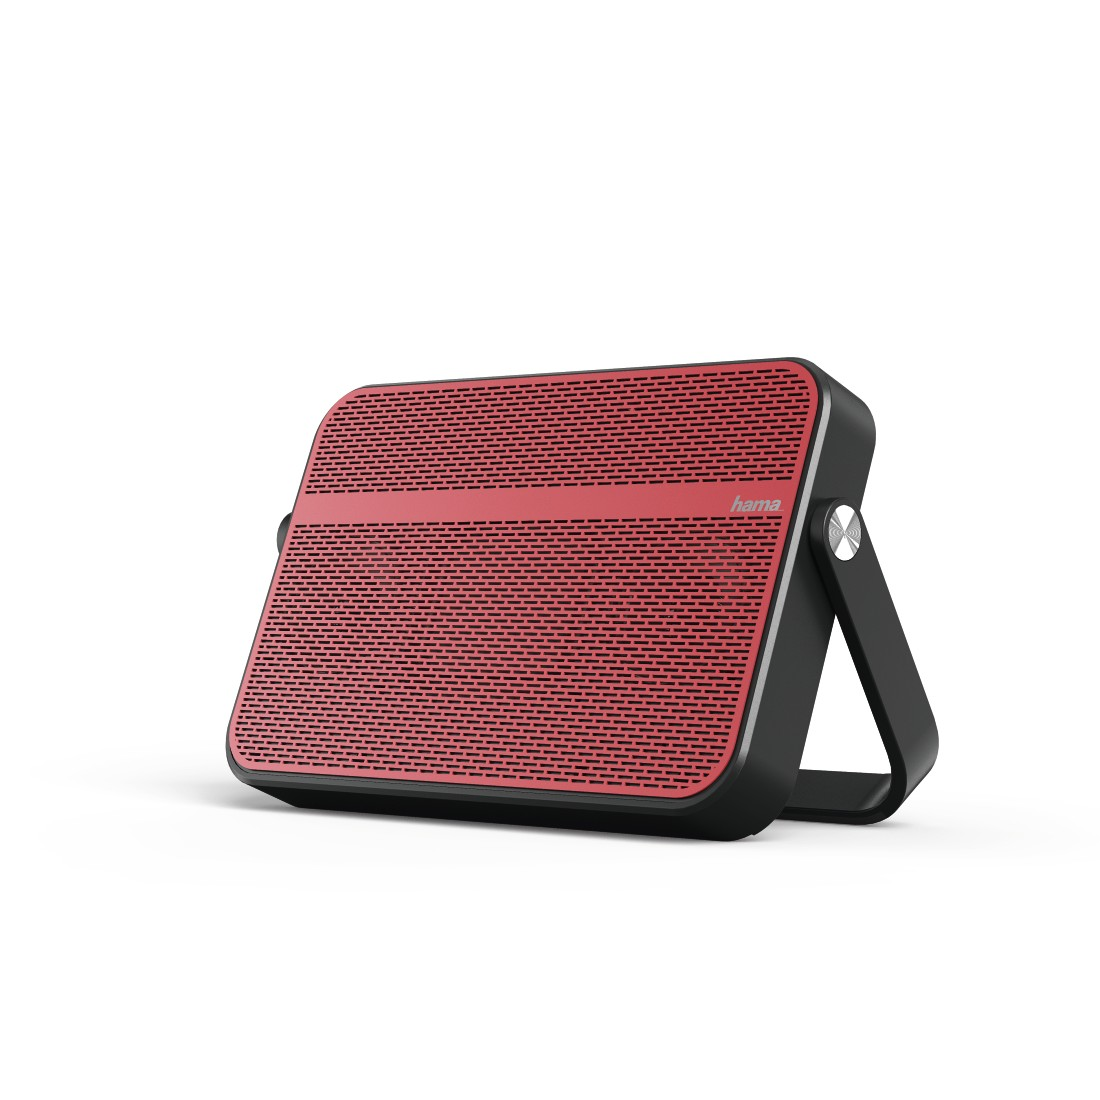 abx High-Res Image - Hama, Blade Mobile Bluetooth Speaker, red/black